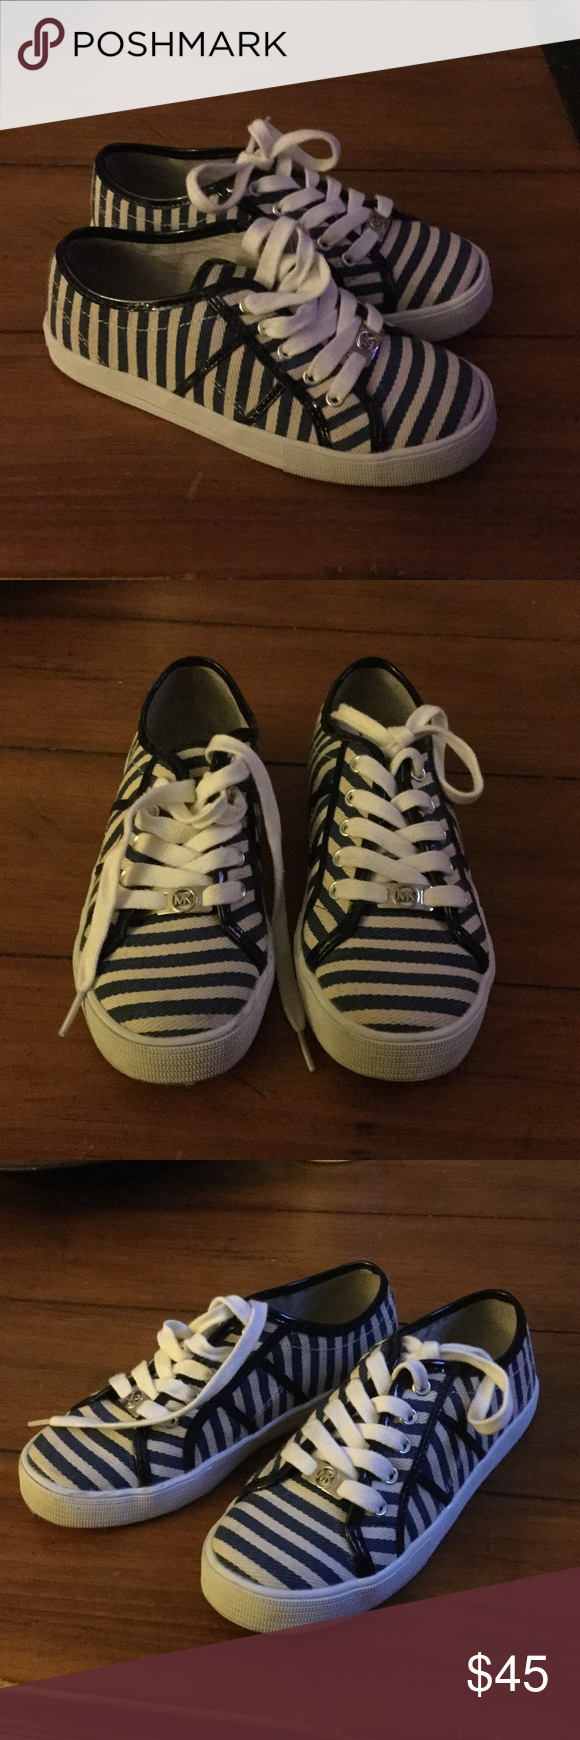 🎉🎊Host pick 🎉🎊Michael Kors sneakers Michael Kors striped sneakers. Girl size 3. Used 1 time only. In excellent condition. White & blue stripes color. Very cute. Don't have the original box. Thank you for looking! Michael Kors Shoes Sneakers